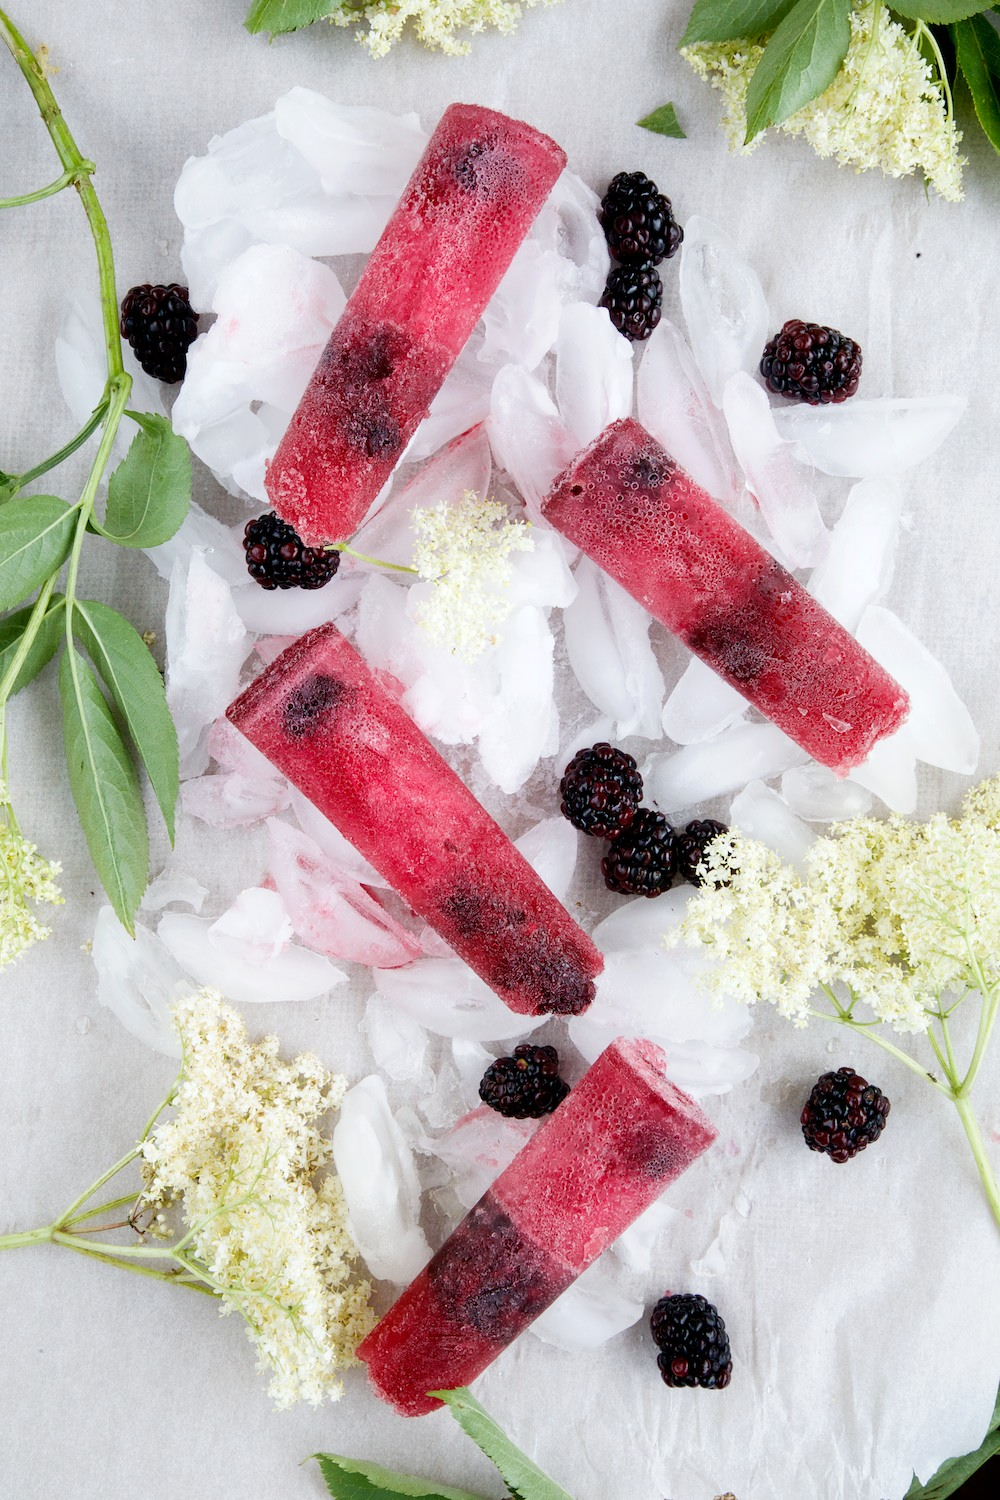 Pimms Ice Pops